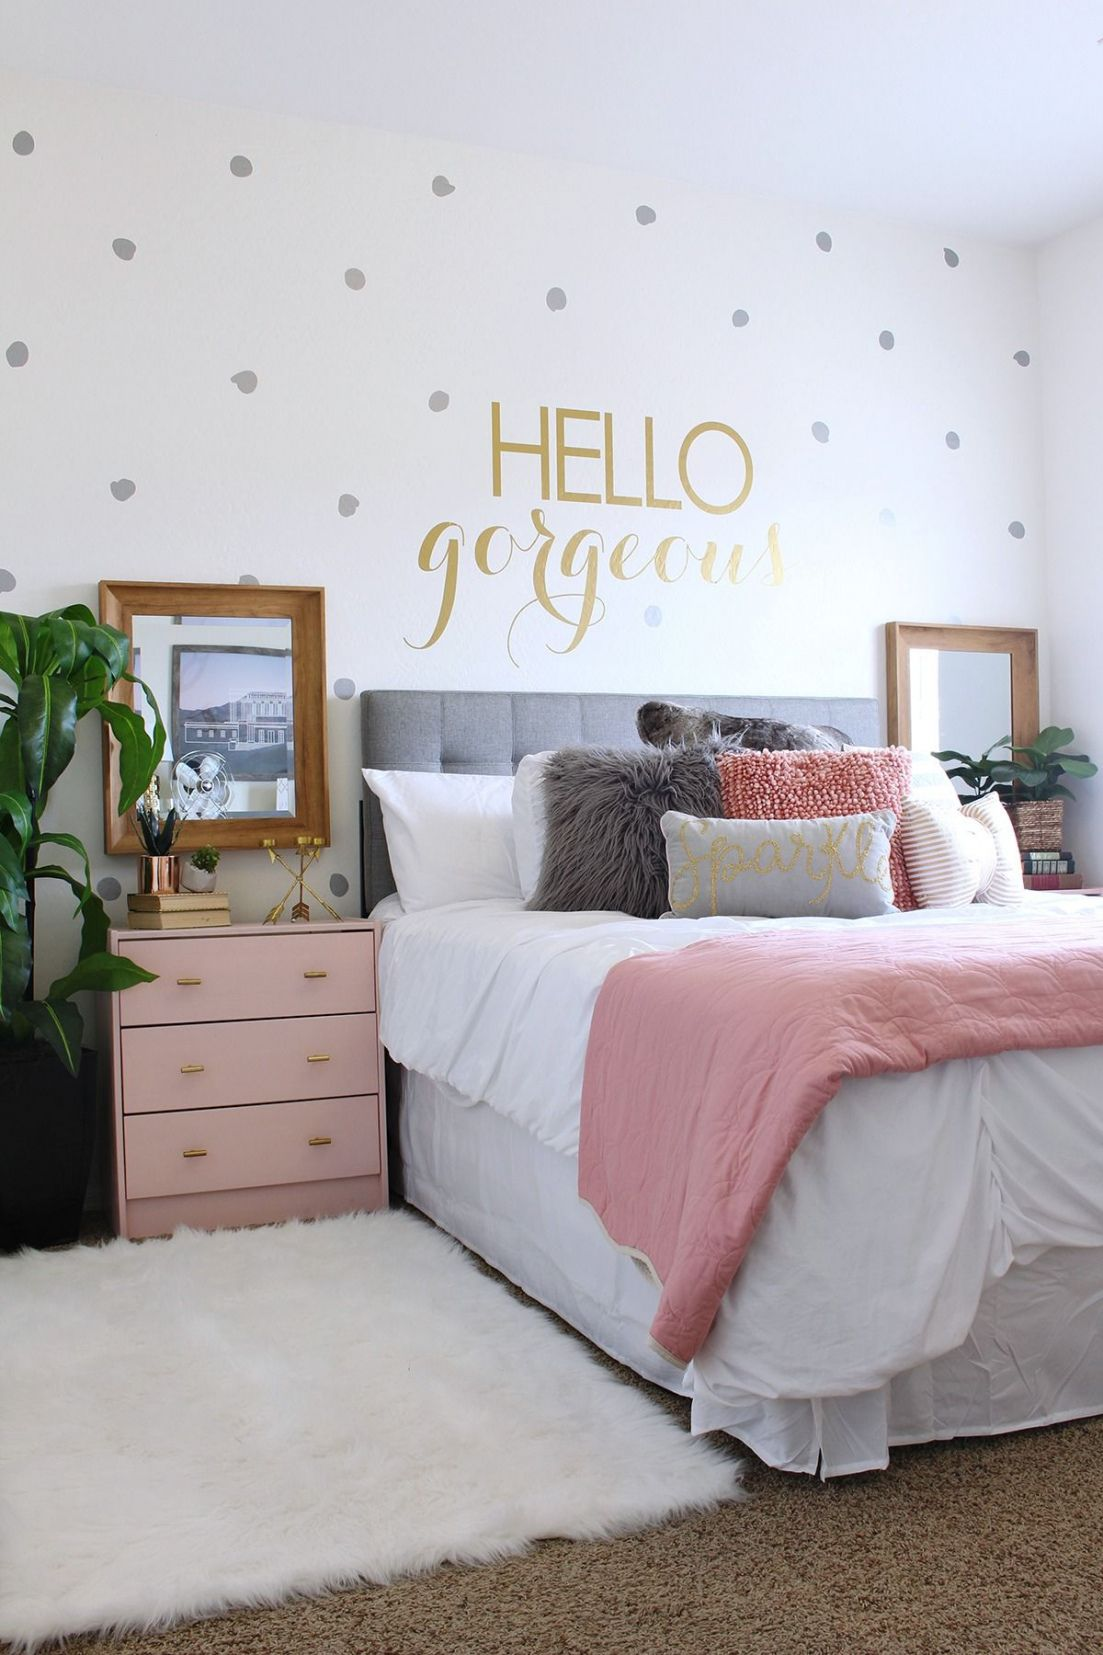 20+ Rooms for Teen Girls - organization Ideas for Small Bedrooms ...